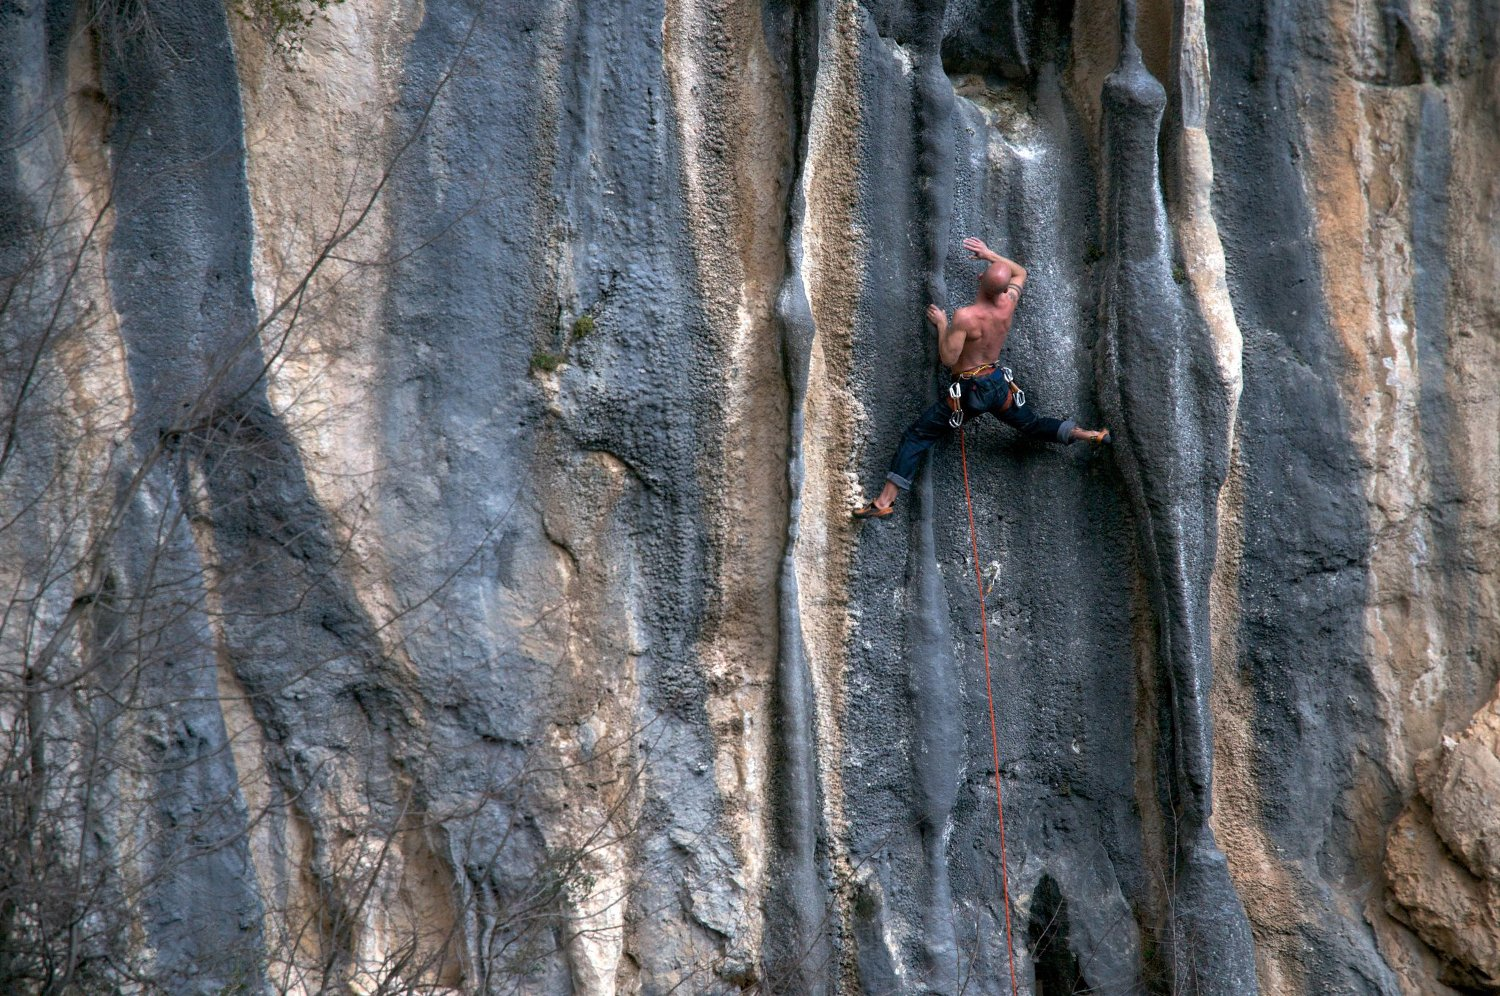 Rock climbing in Bovilla Canyon near Tirana, Albania